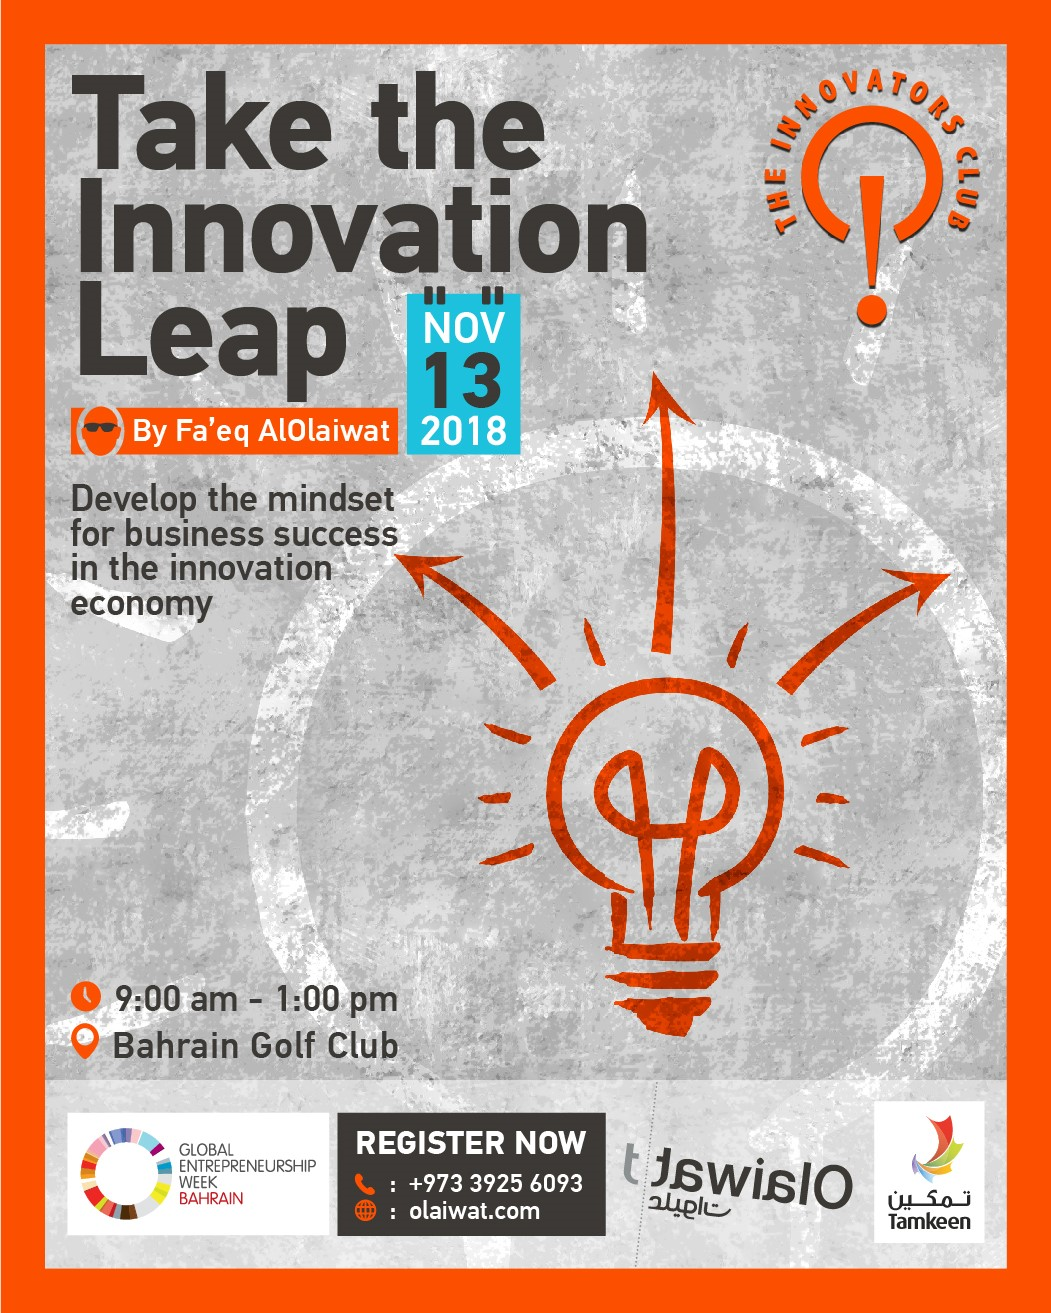 Take the Innovation Leap - Events - WhatsUpBahrain net